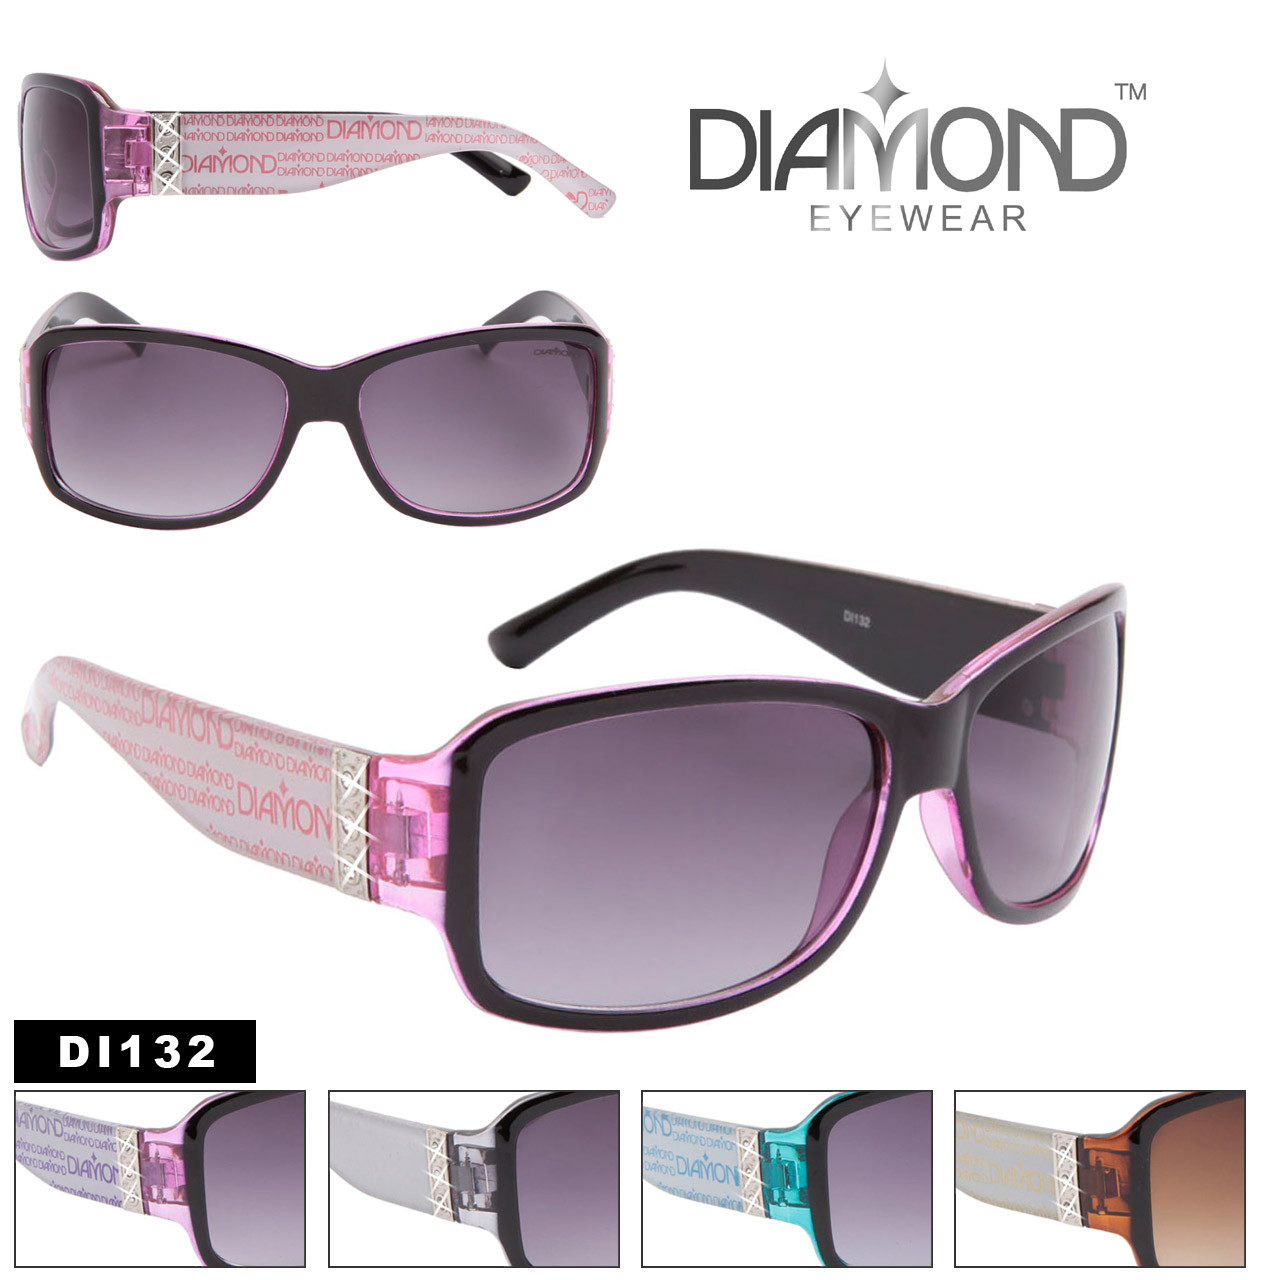 Diamond Eyewear DI132